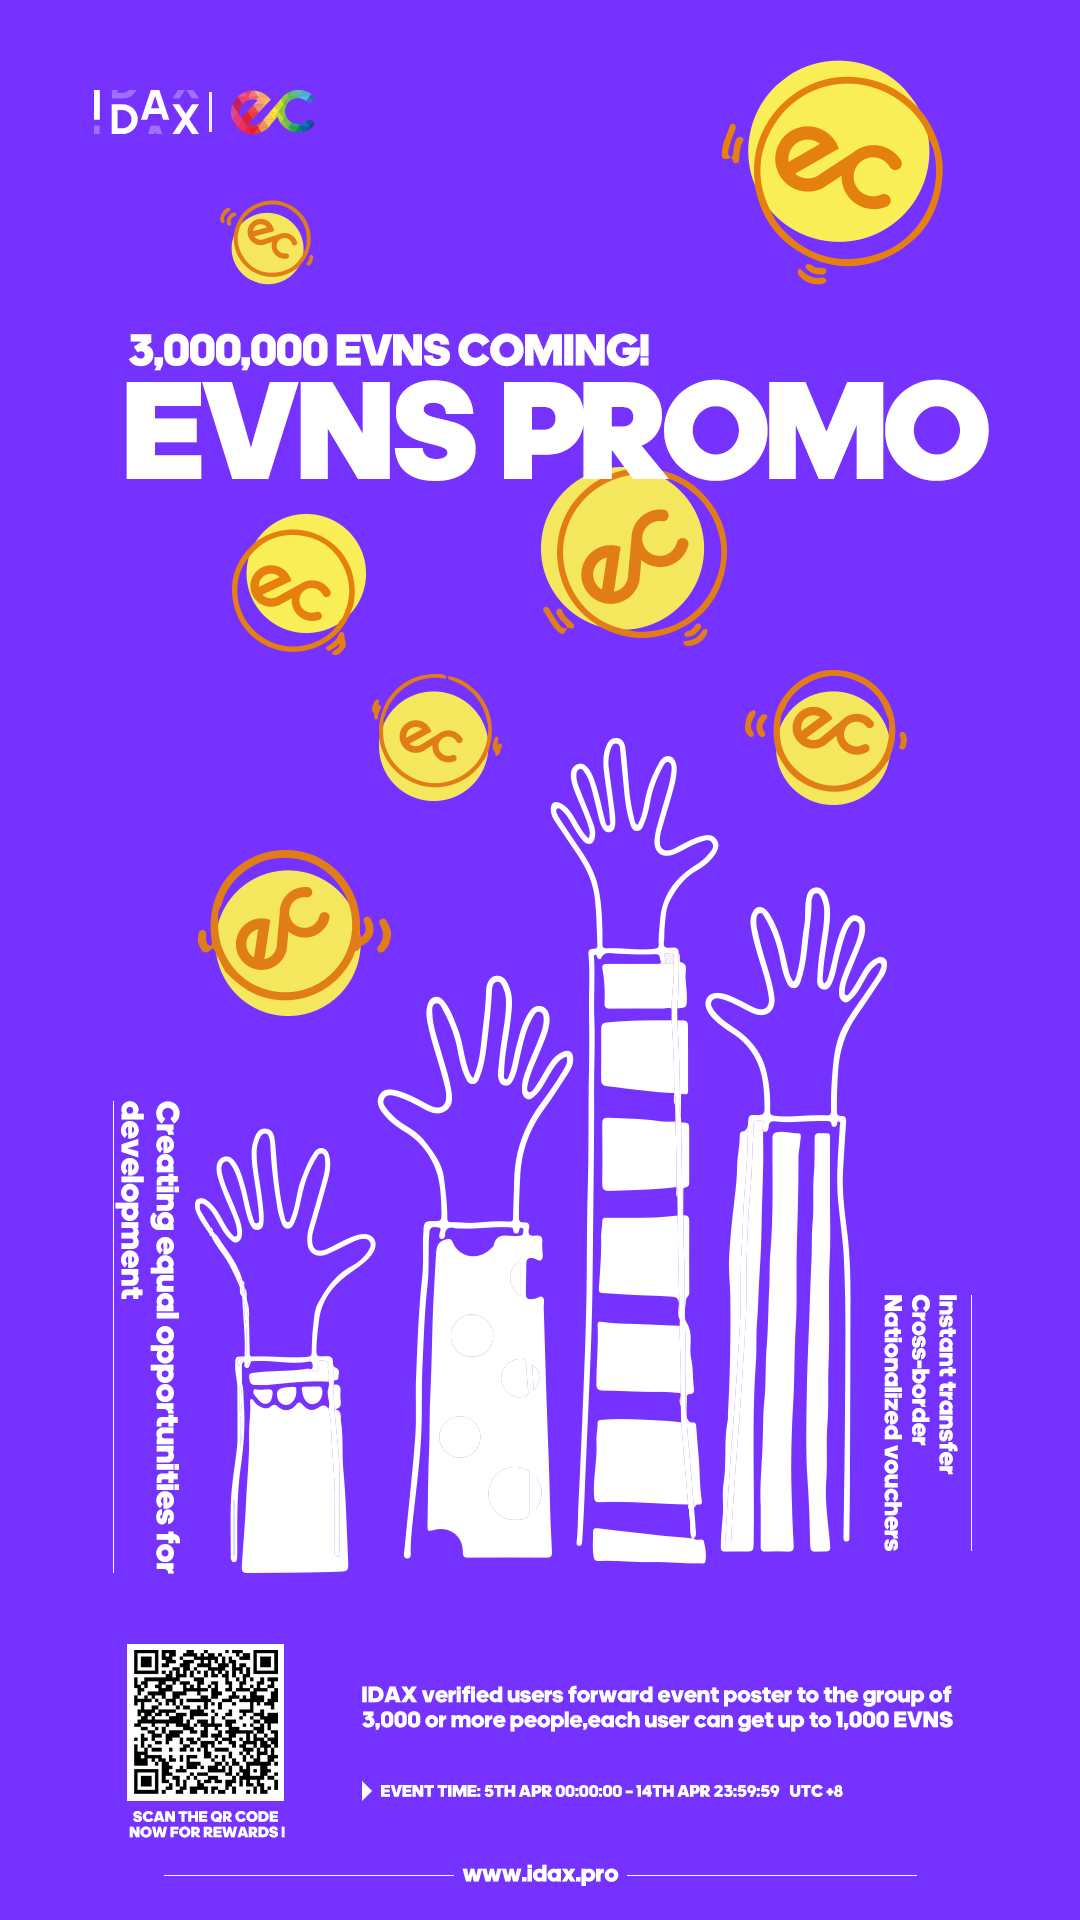 Promotional Reward Campaign of 3,000,000 EVNS by IDAX